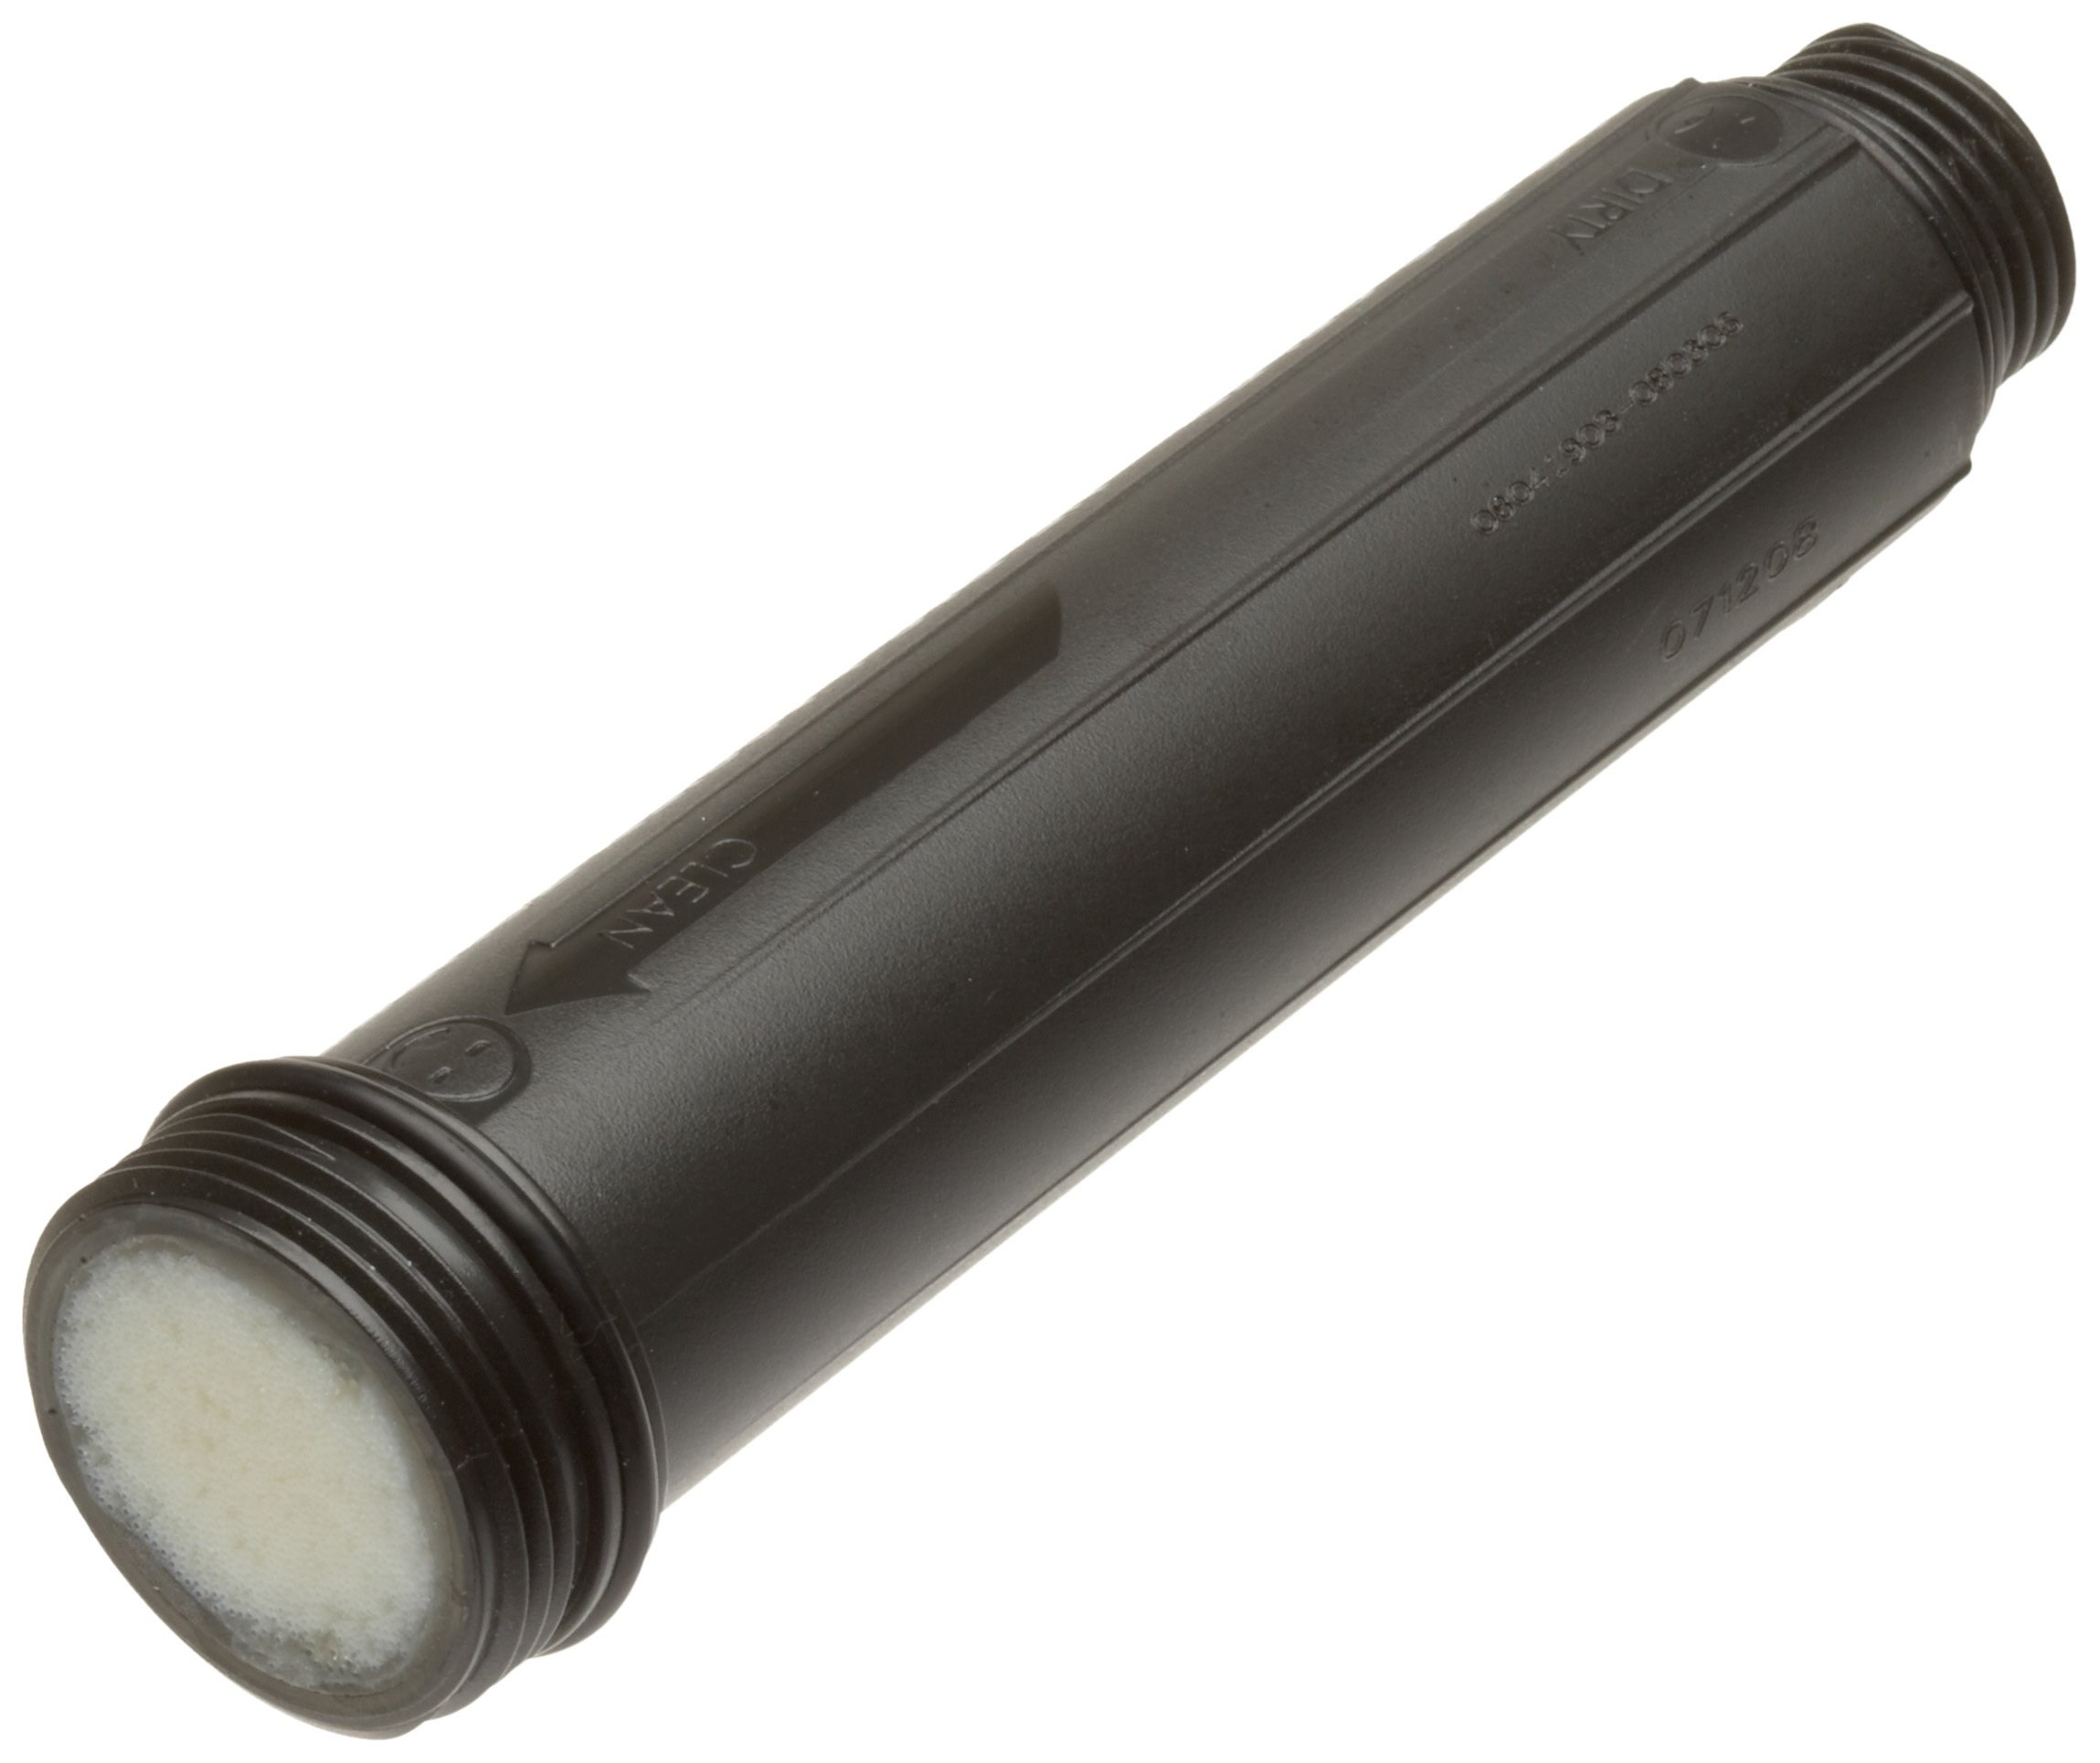 MSR HyperFlow Microfilter Water Filter Replacement Cartridge by MSR